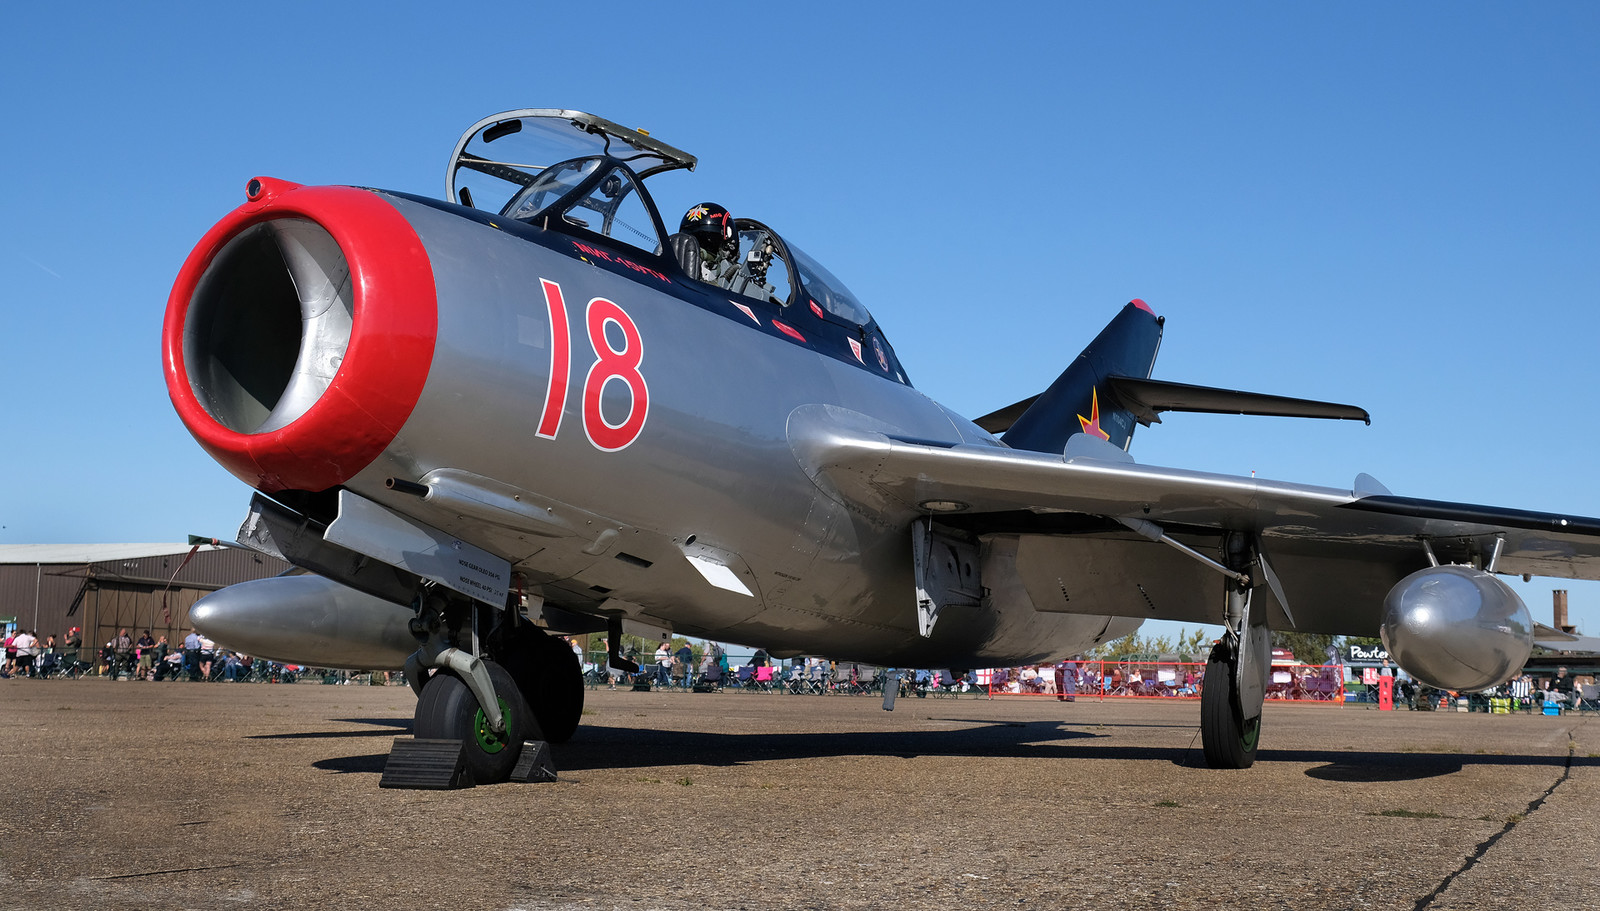 Mig 15 trainer. Built in Poland.